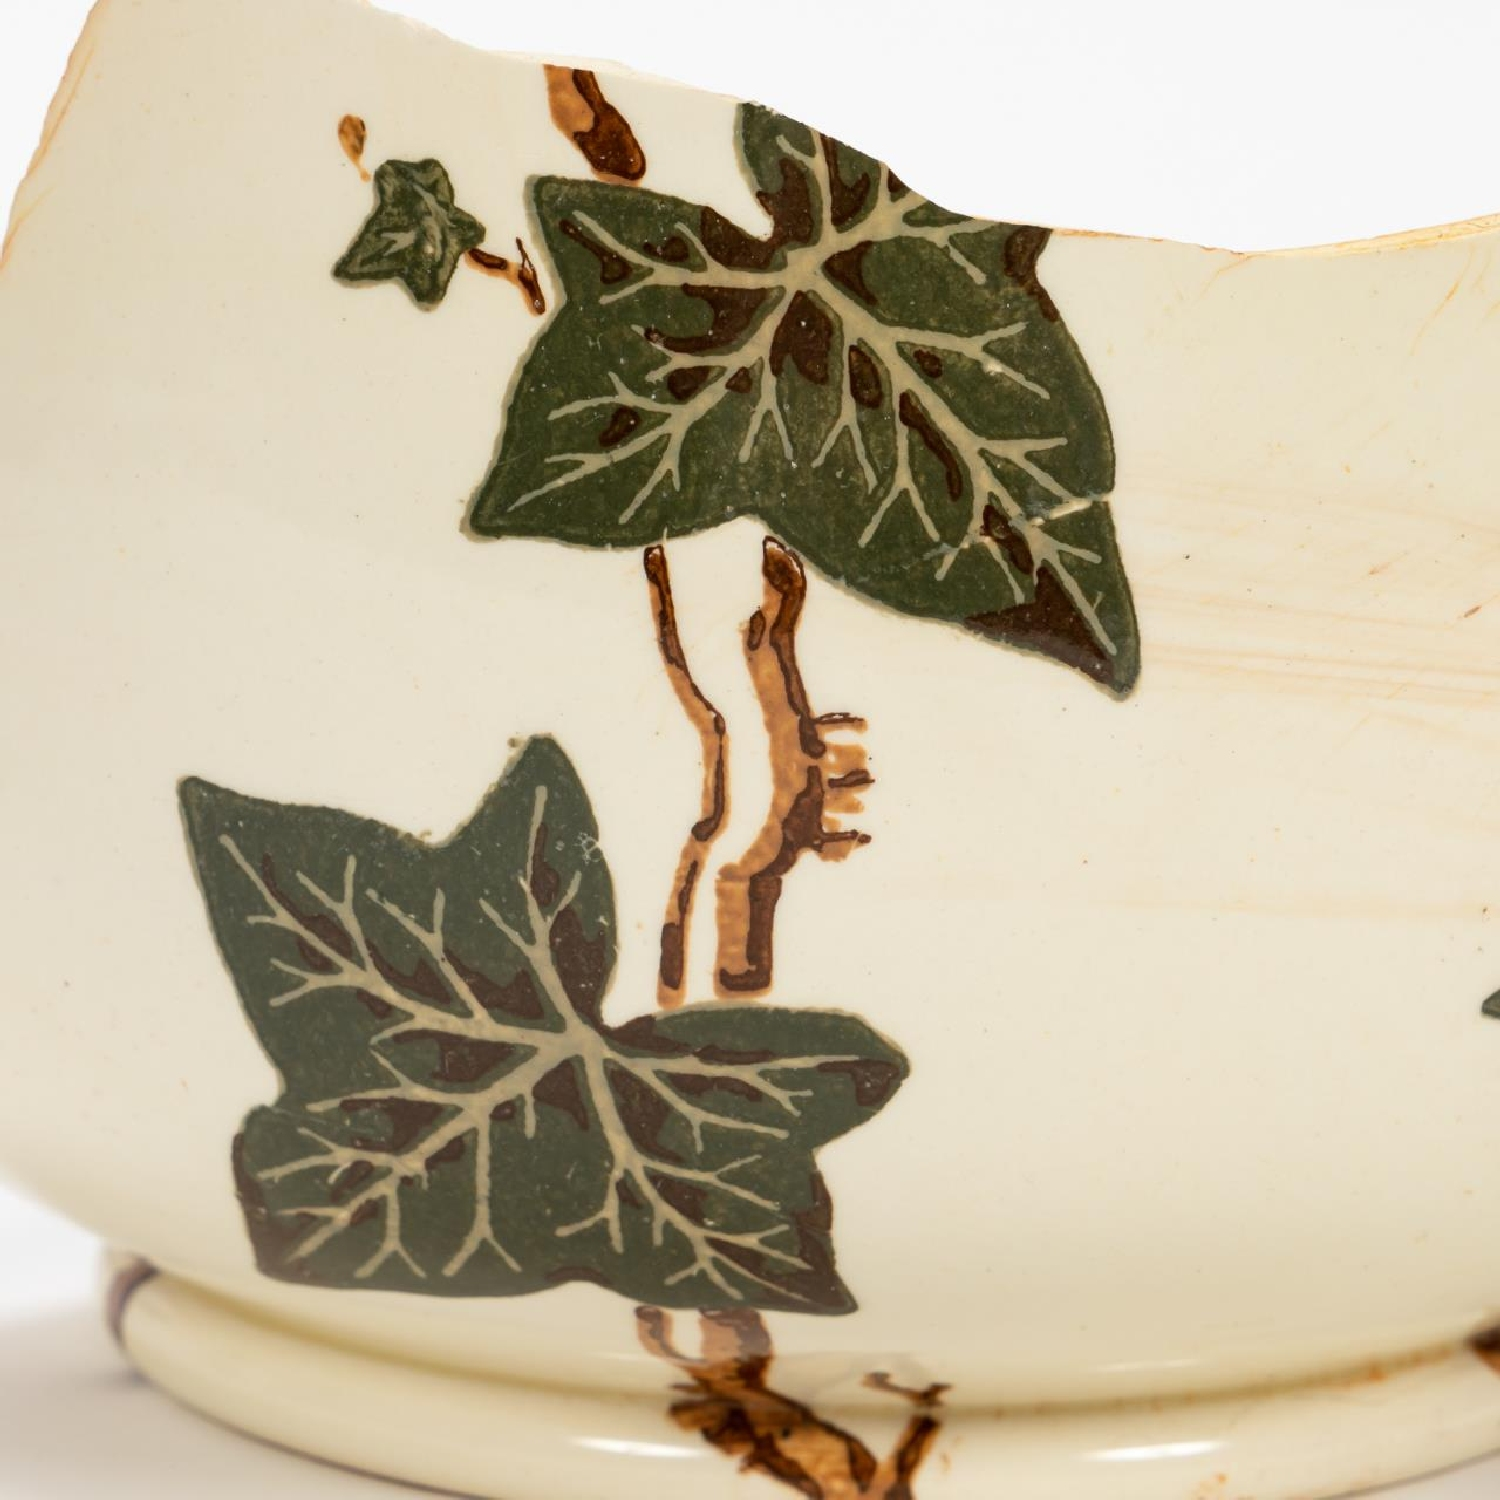 RMS CARPATHIA, SALVAGED PARTIAL IVY CHAMBER POT - Image 7 of 7